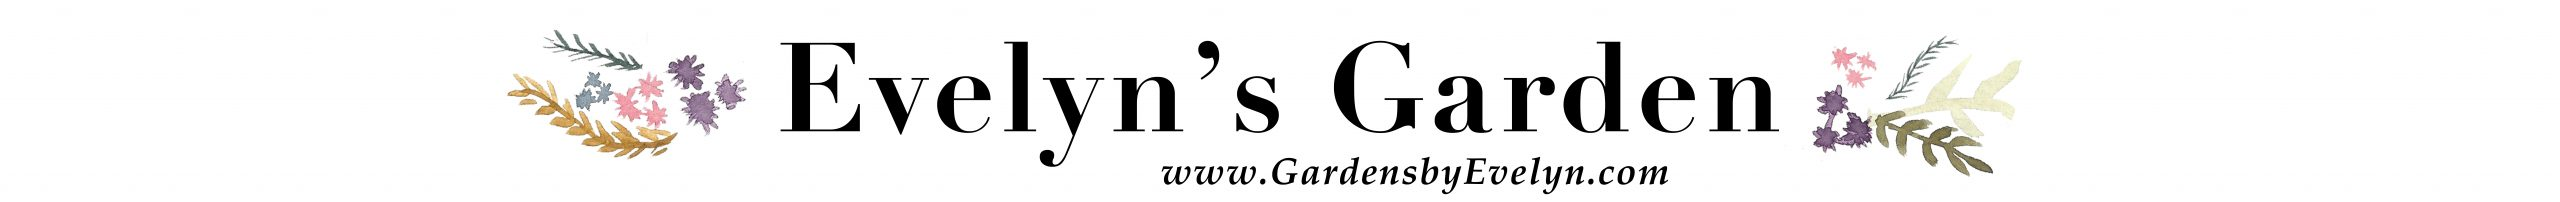 Evelyn's Garden Logo